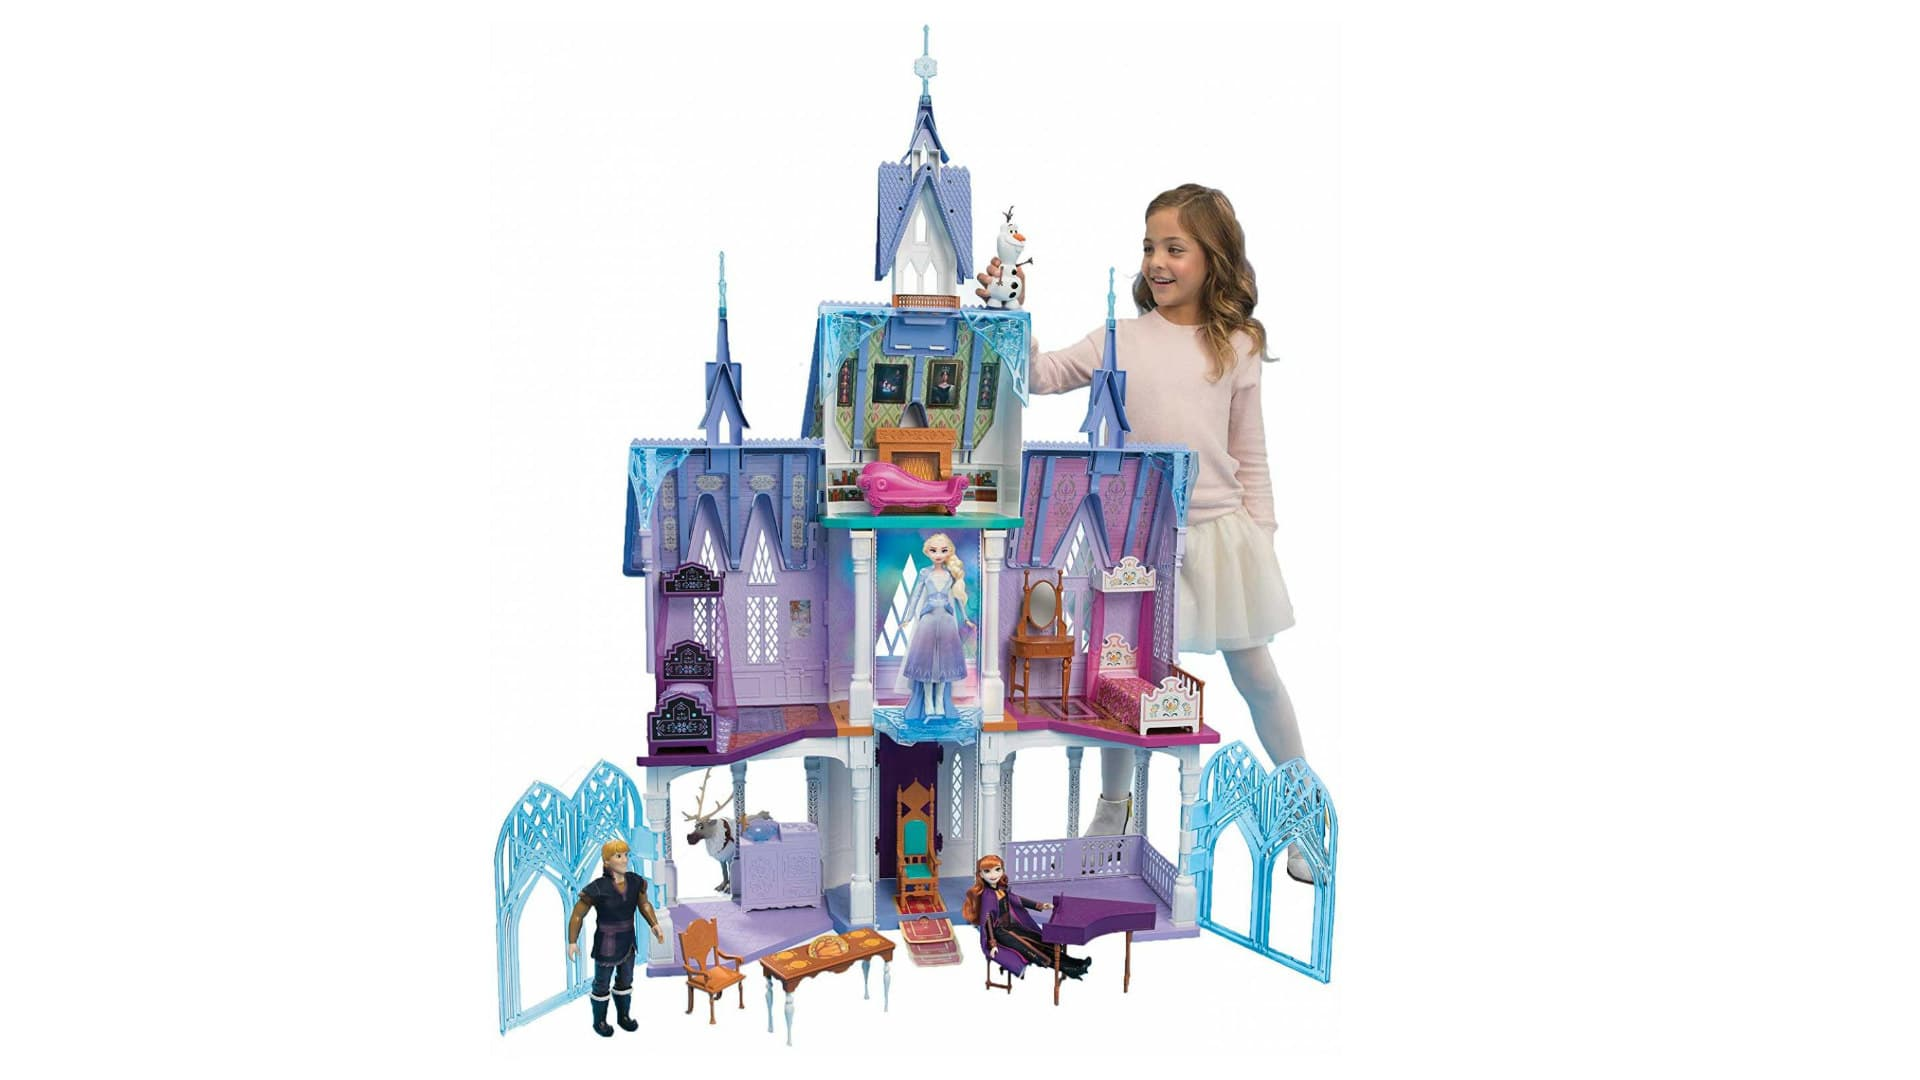 The ultimate Arendelle castle Playset is 5 feet tall, 4 feet wide with 2 sides of folding gates and 4 floors including a lookout tower.